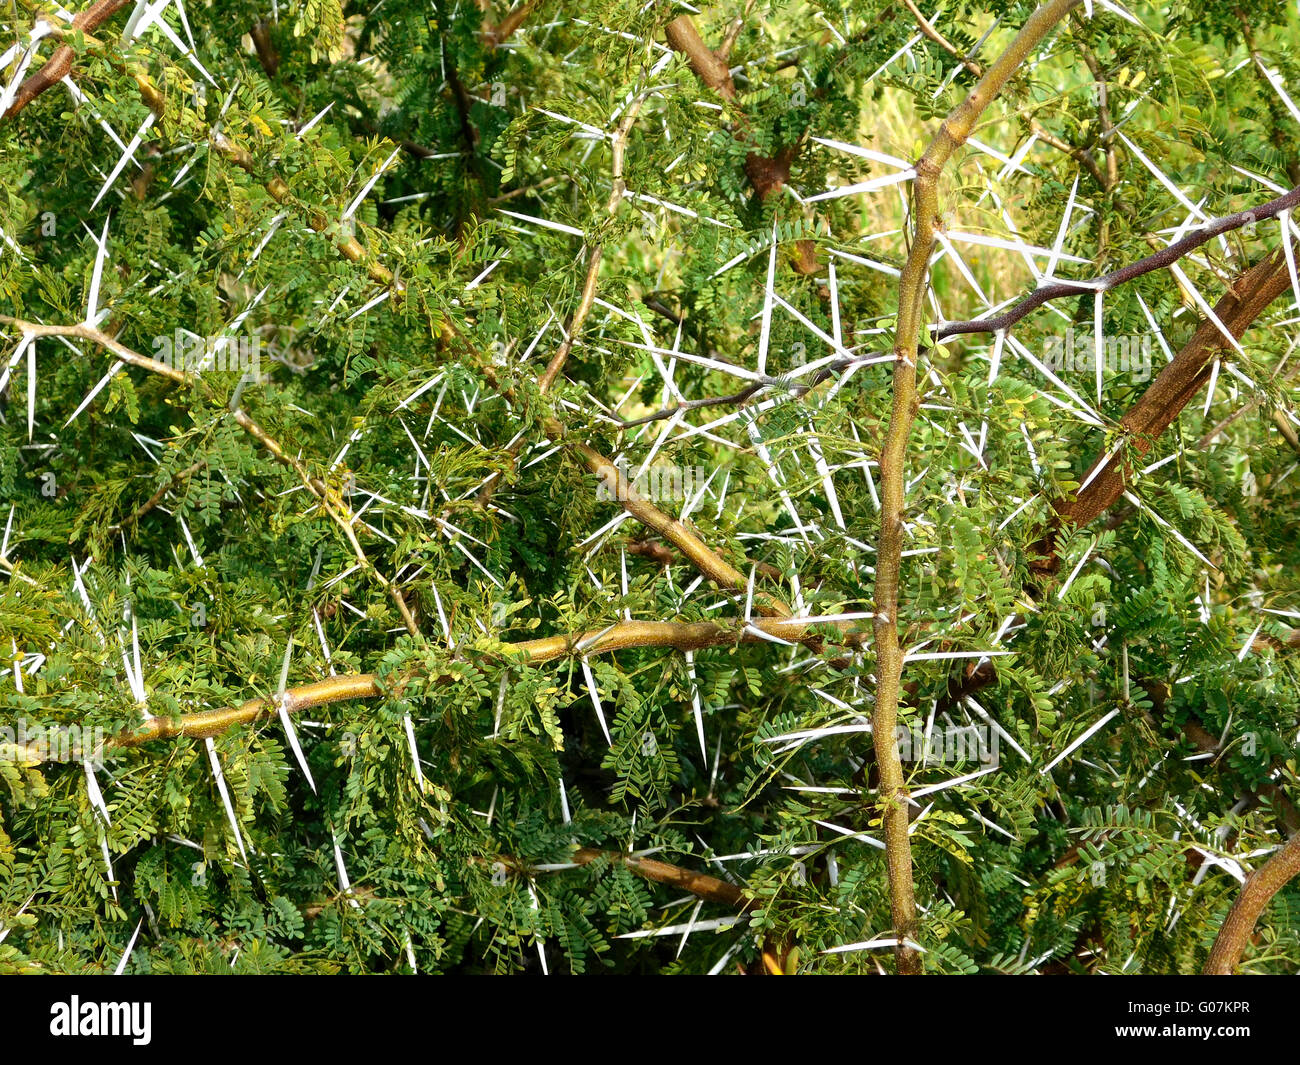 thorny plants Stock Photo, Royalty Free Image: 103431407 ...